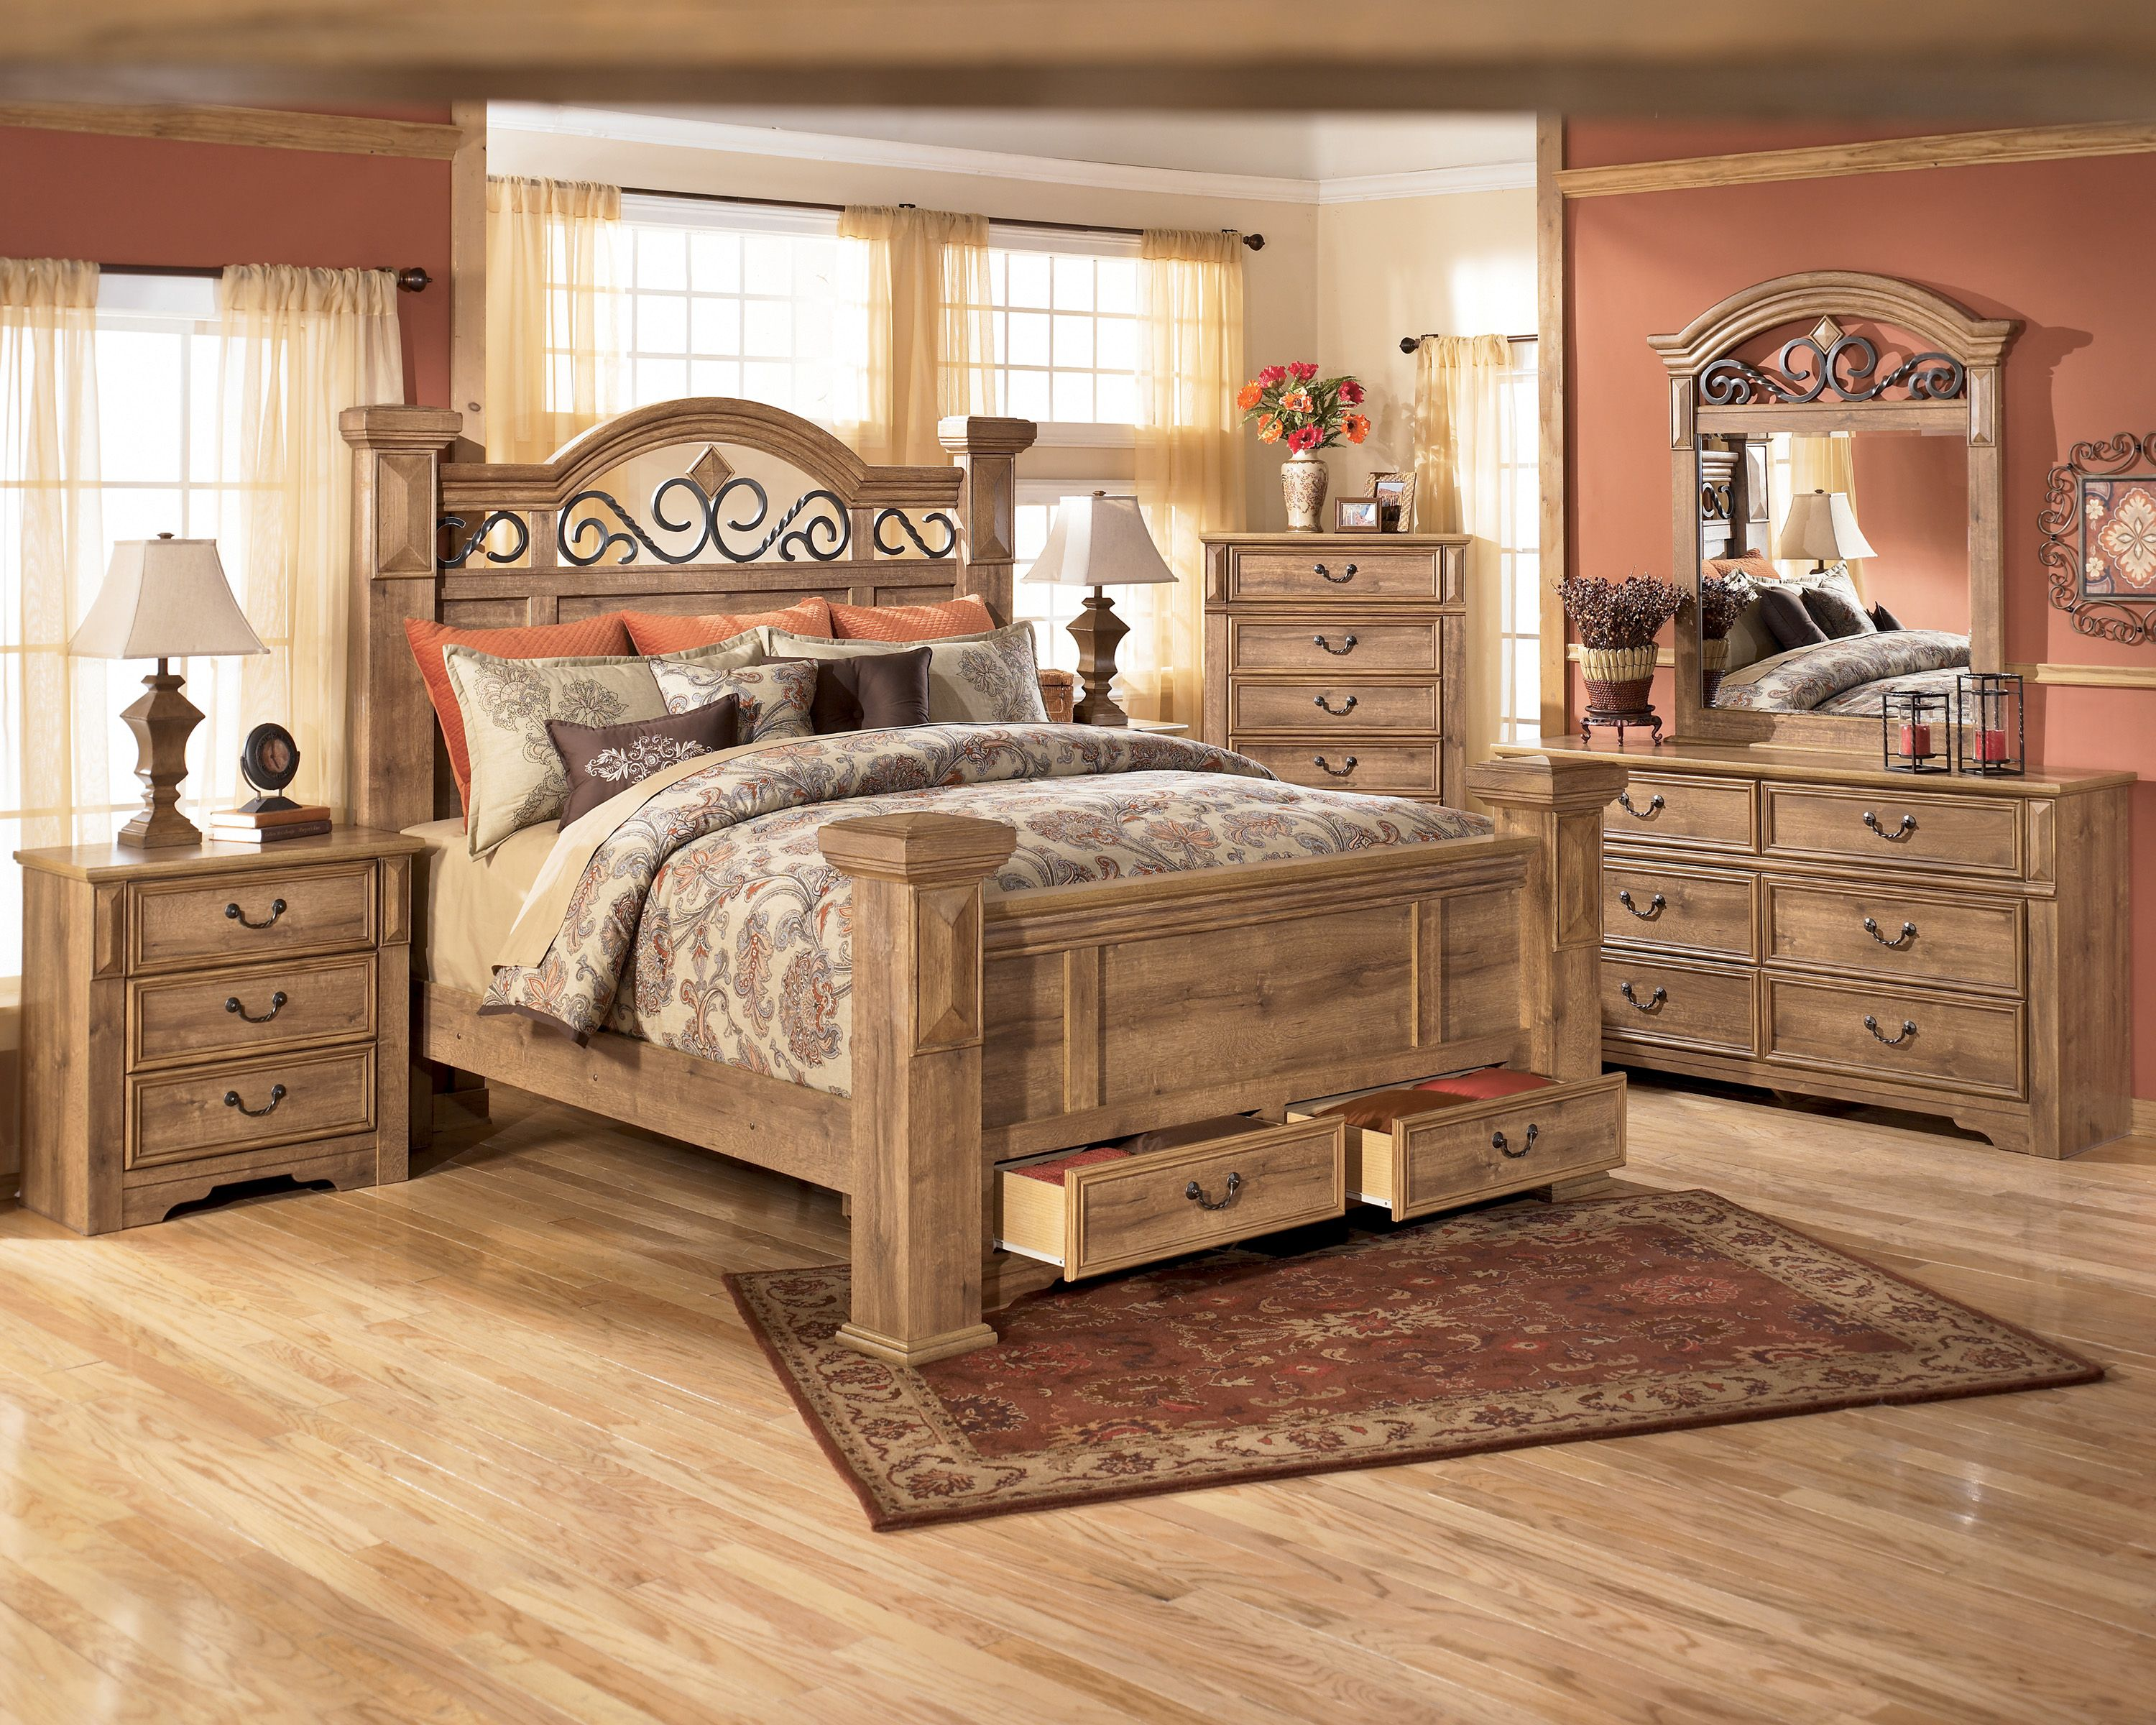 Best King Size Bed Set Rosalinda King Beds Pinterest King